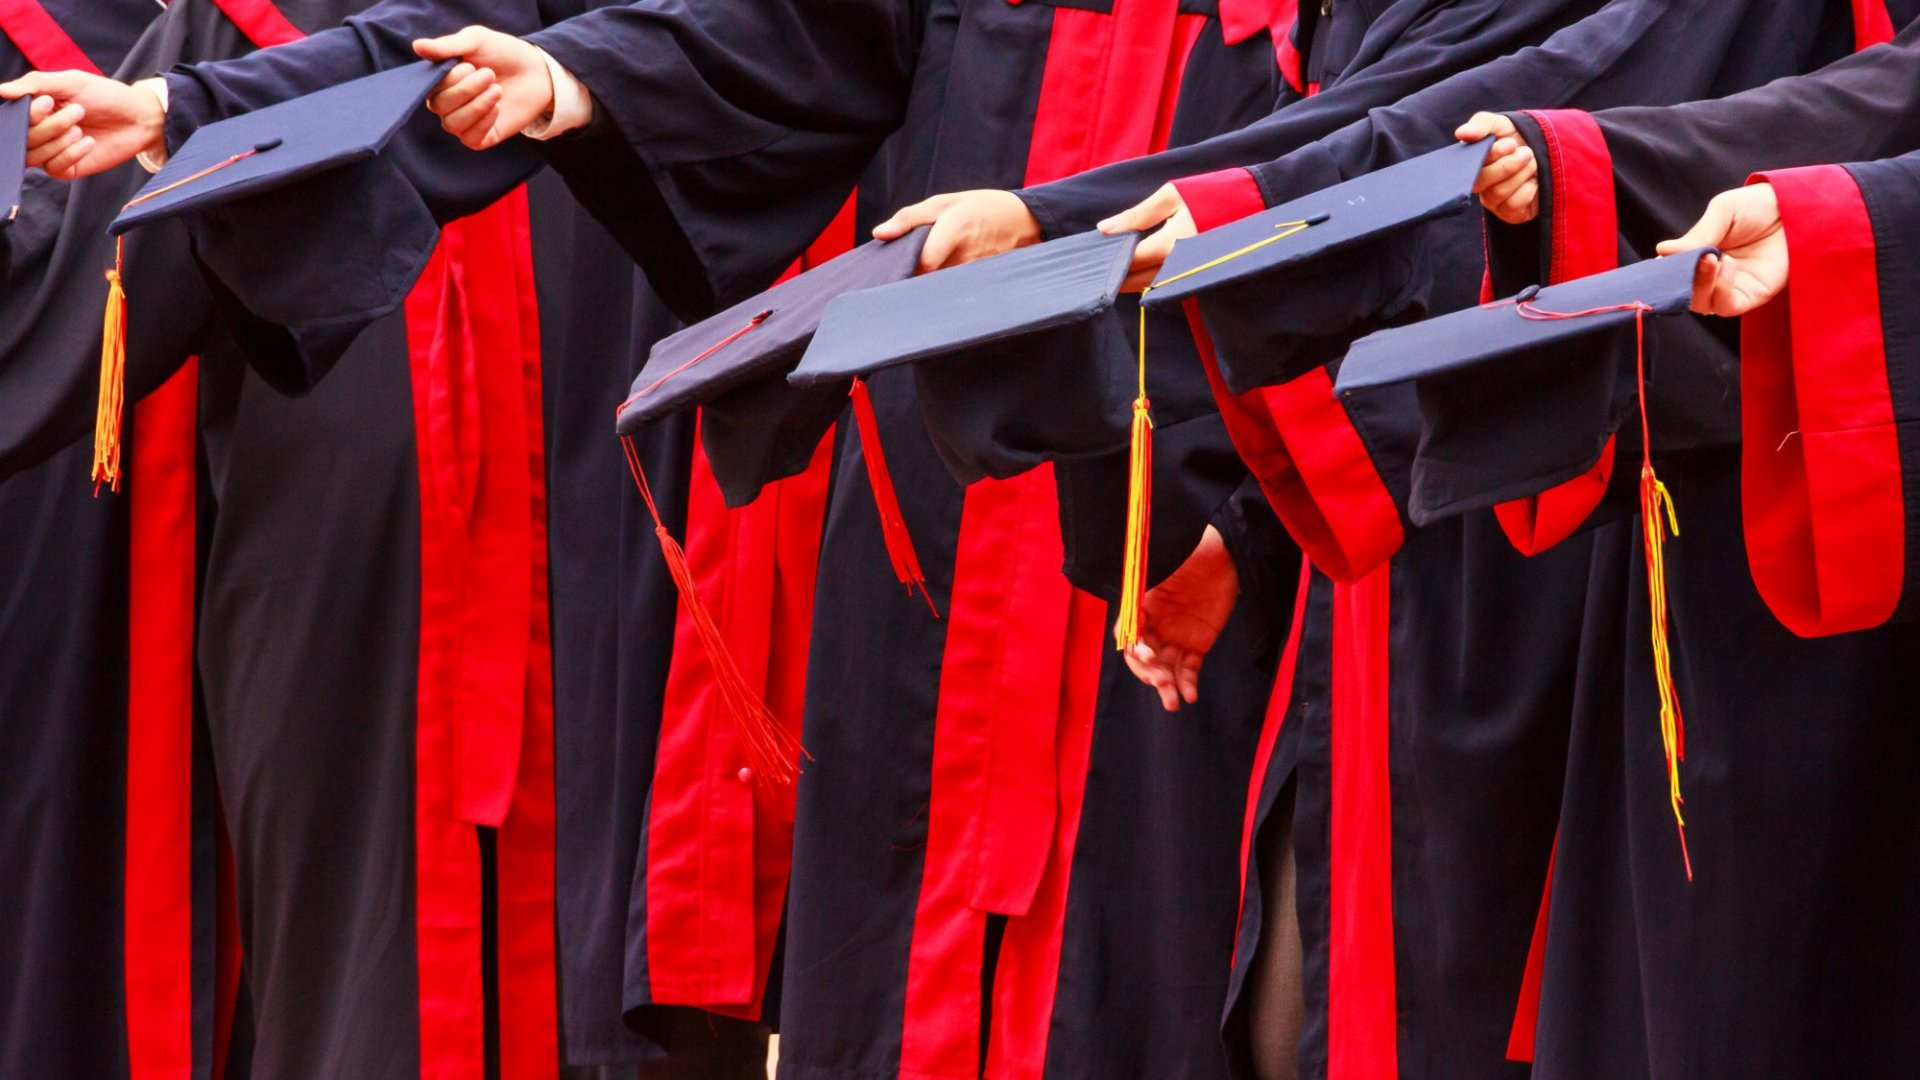 The Best MBA Programs in the World Ranked From Least to Most Expensive